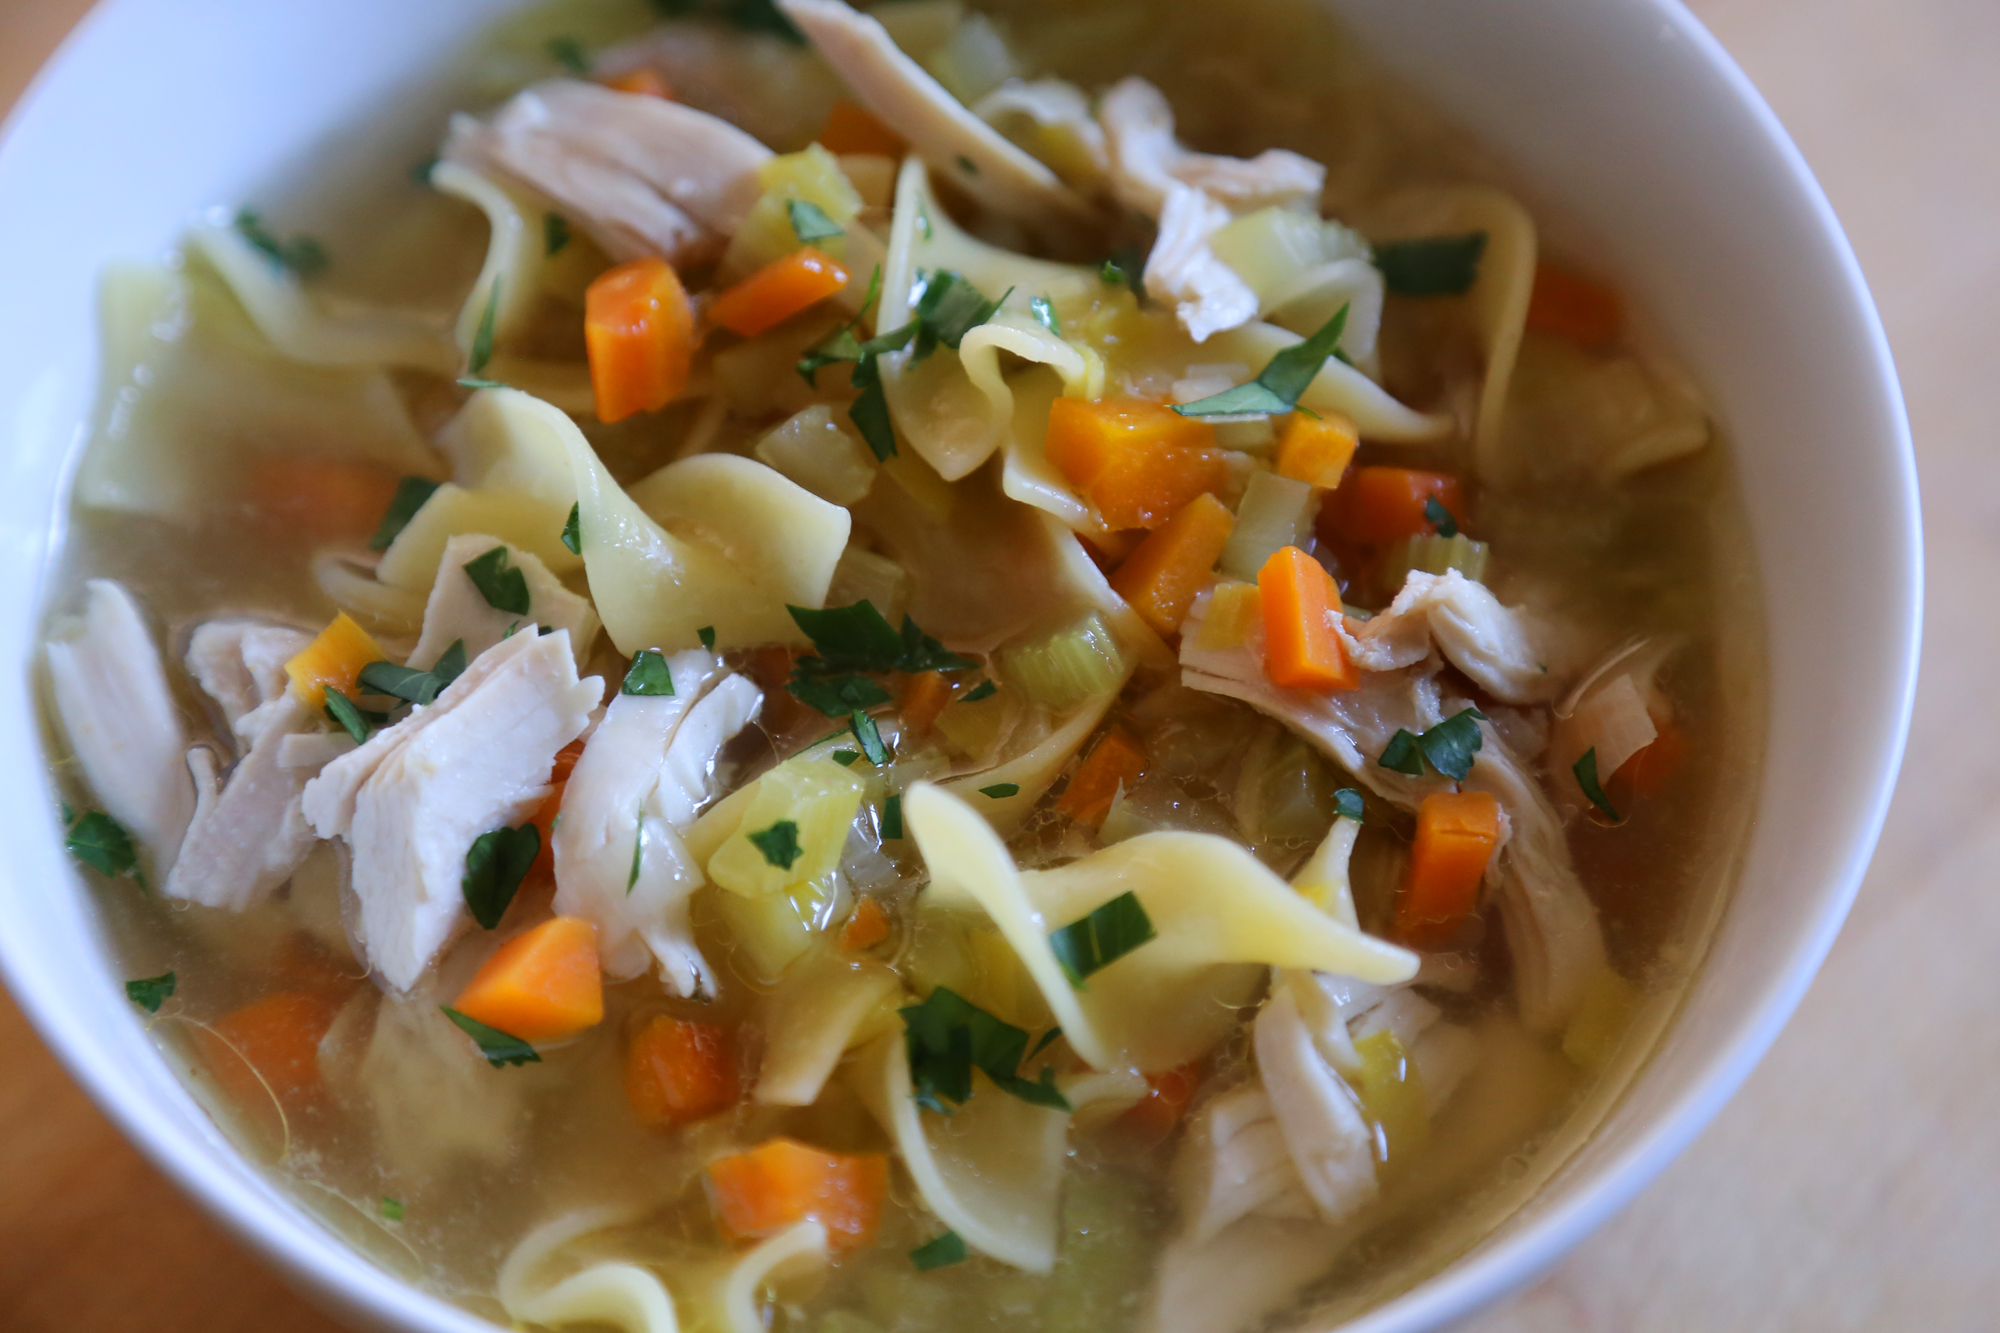 Use the stock to make homemade Chicken Noodle Soup.